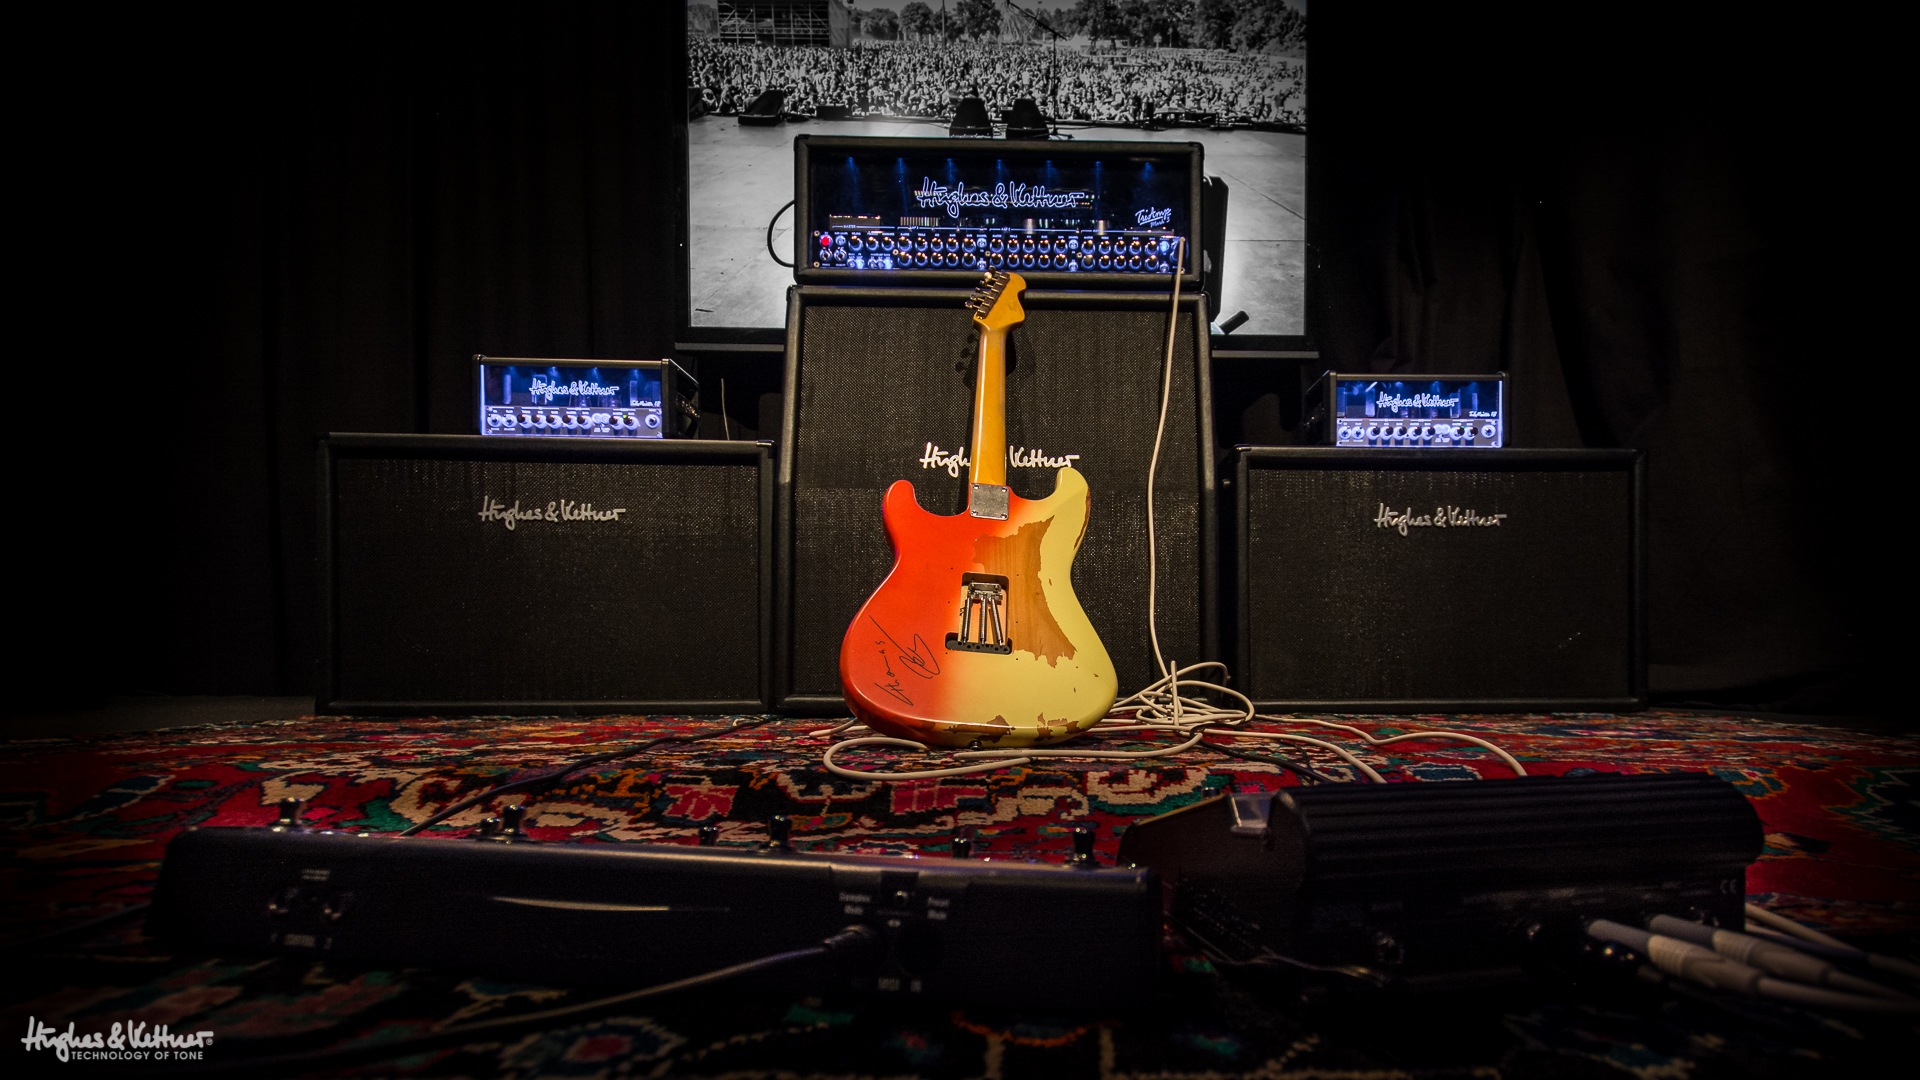 Stereo Mono And Wet Dry Amp Rigs Which Is Best Hughes Diagram Furthermore Live Sound Pa System Setup On The Kind Of Rig Many Guitarists Could Only Dream